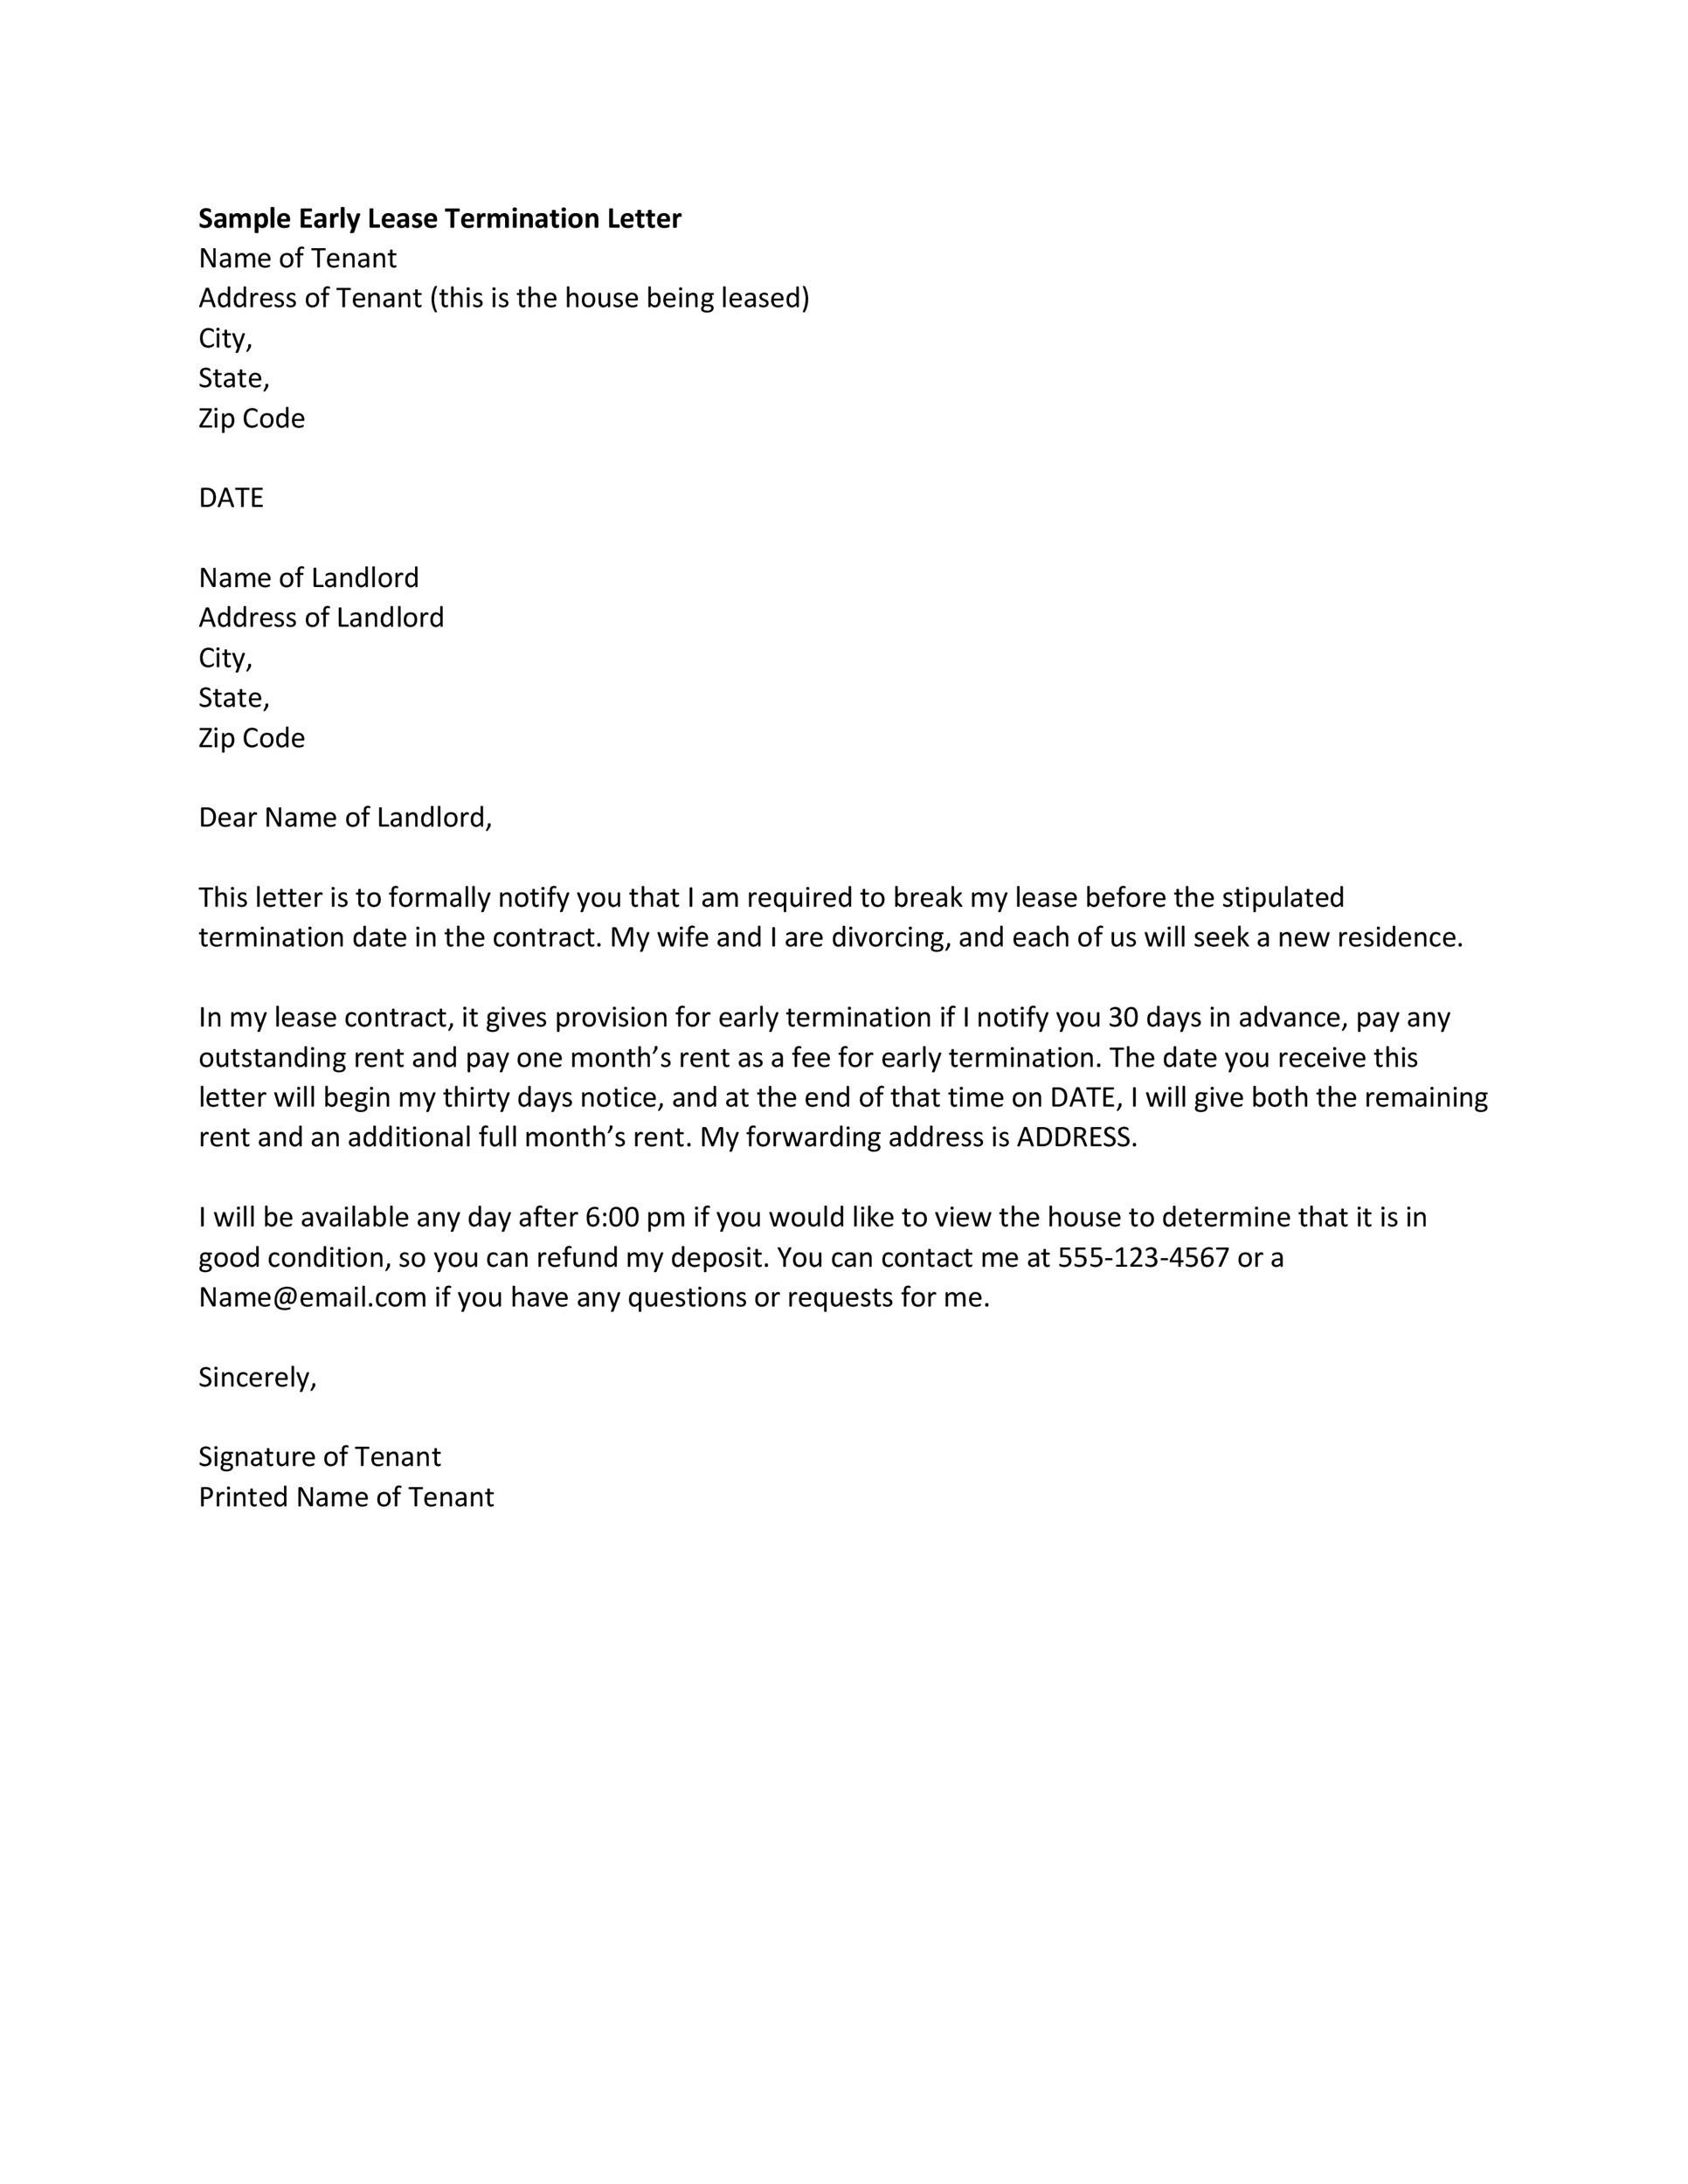 35 Perfect Termination Letter Samples Lease Employee Contract – Sample Termination Letter Template